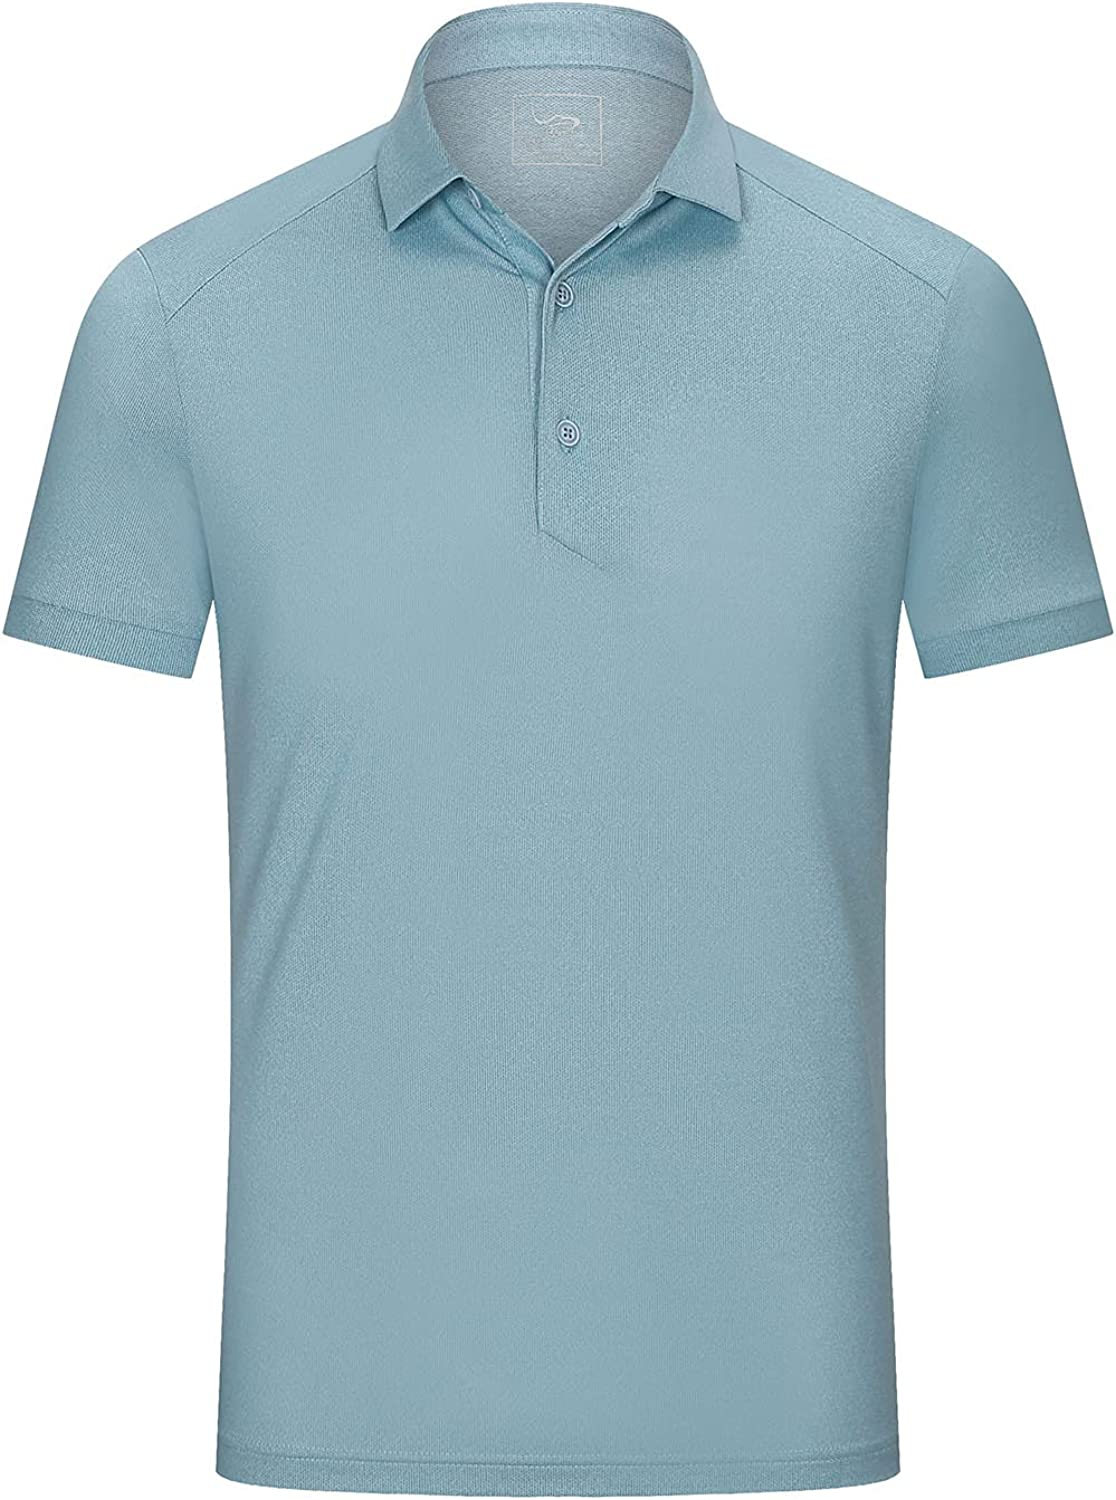 Fixed price for sale All stores are sold EAGEGOF Slim Fit Men's Performance Golf Tech Shirt Stretch Polo